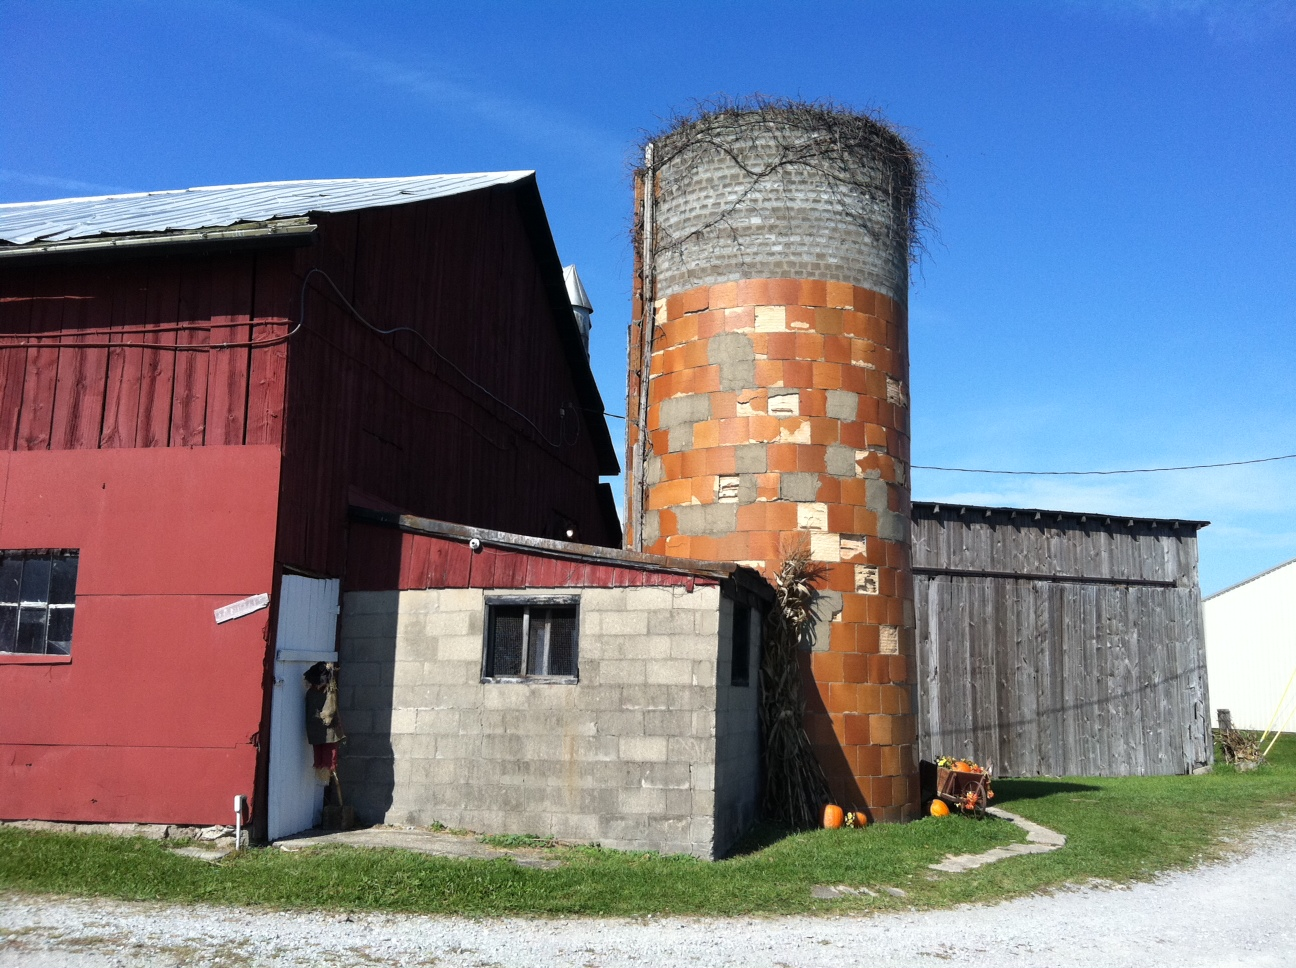 silo and milk barn at the pumpkin patch